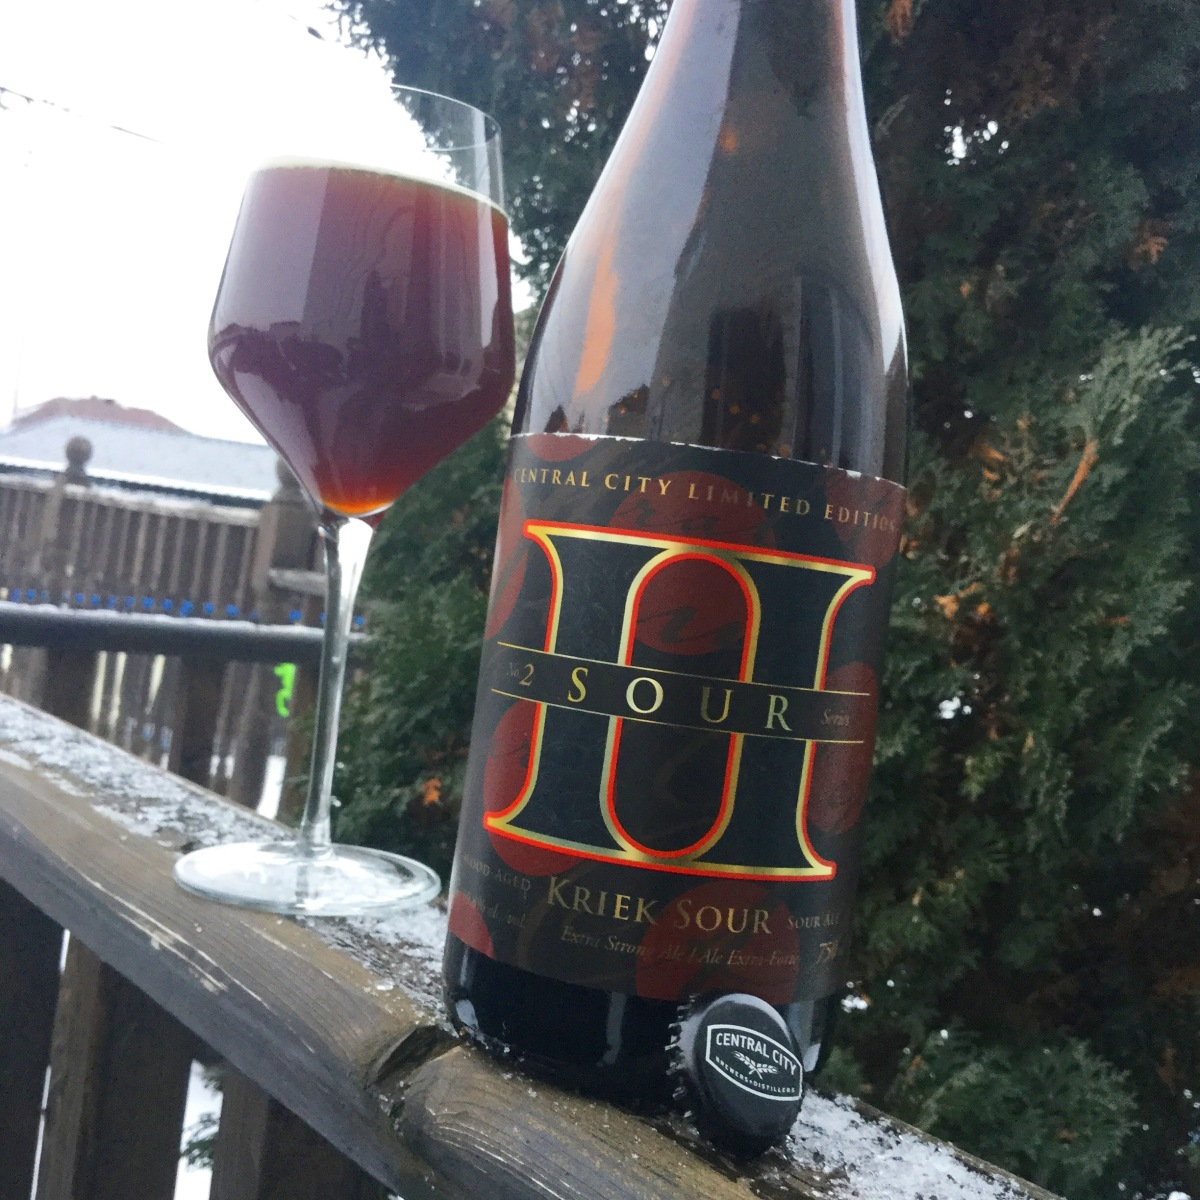 Kriek Sour No. 2